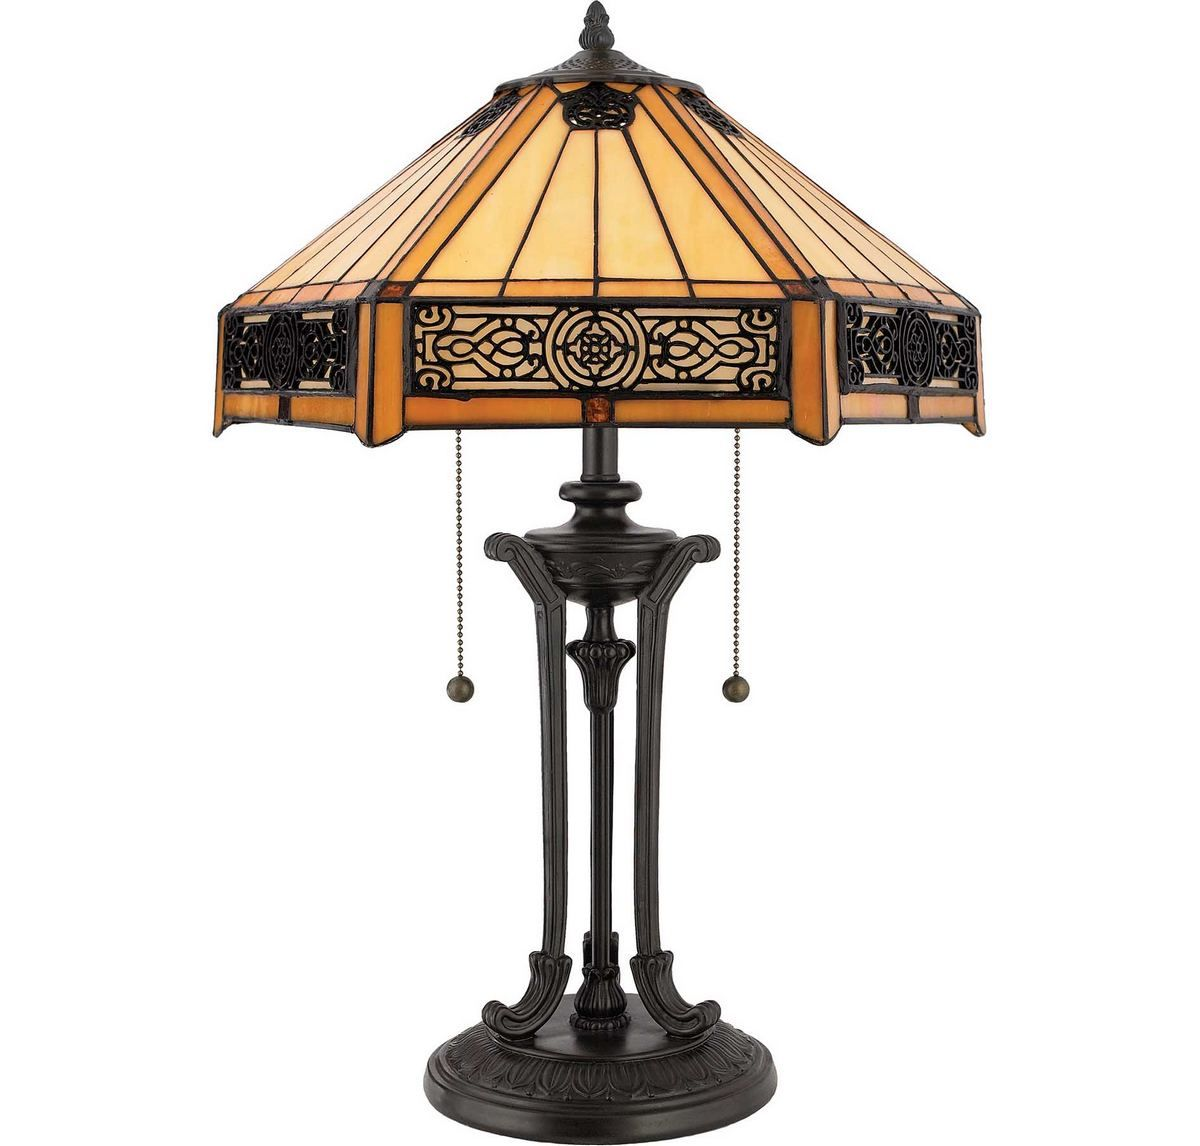 quoizel indus tiffany light table lamp bronze lamps accent tap expand coffee kijiji wicker garden and chairs console tall metal walnut bedside inexpensive end tables for living